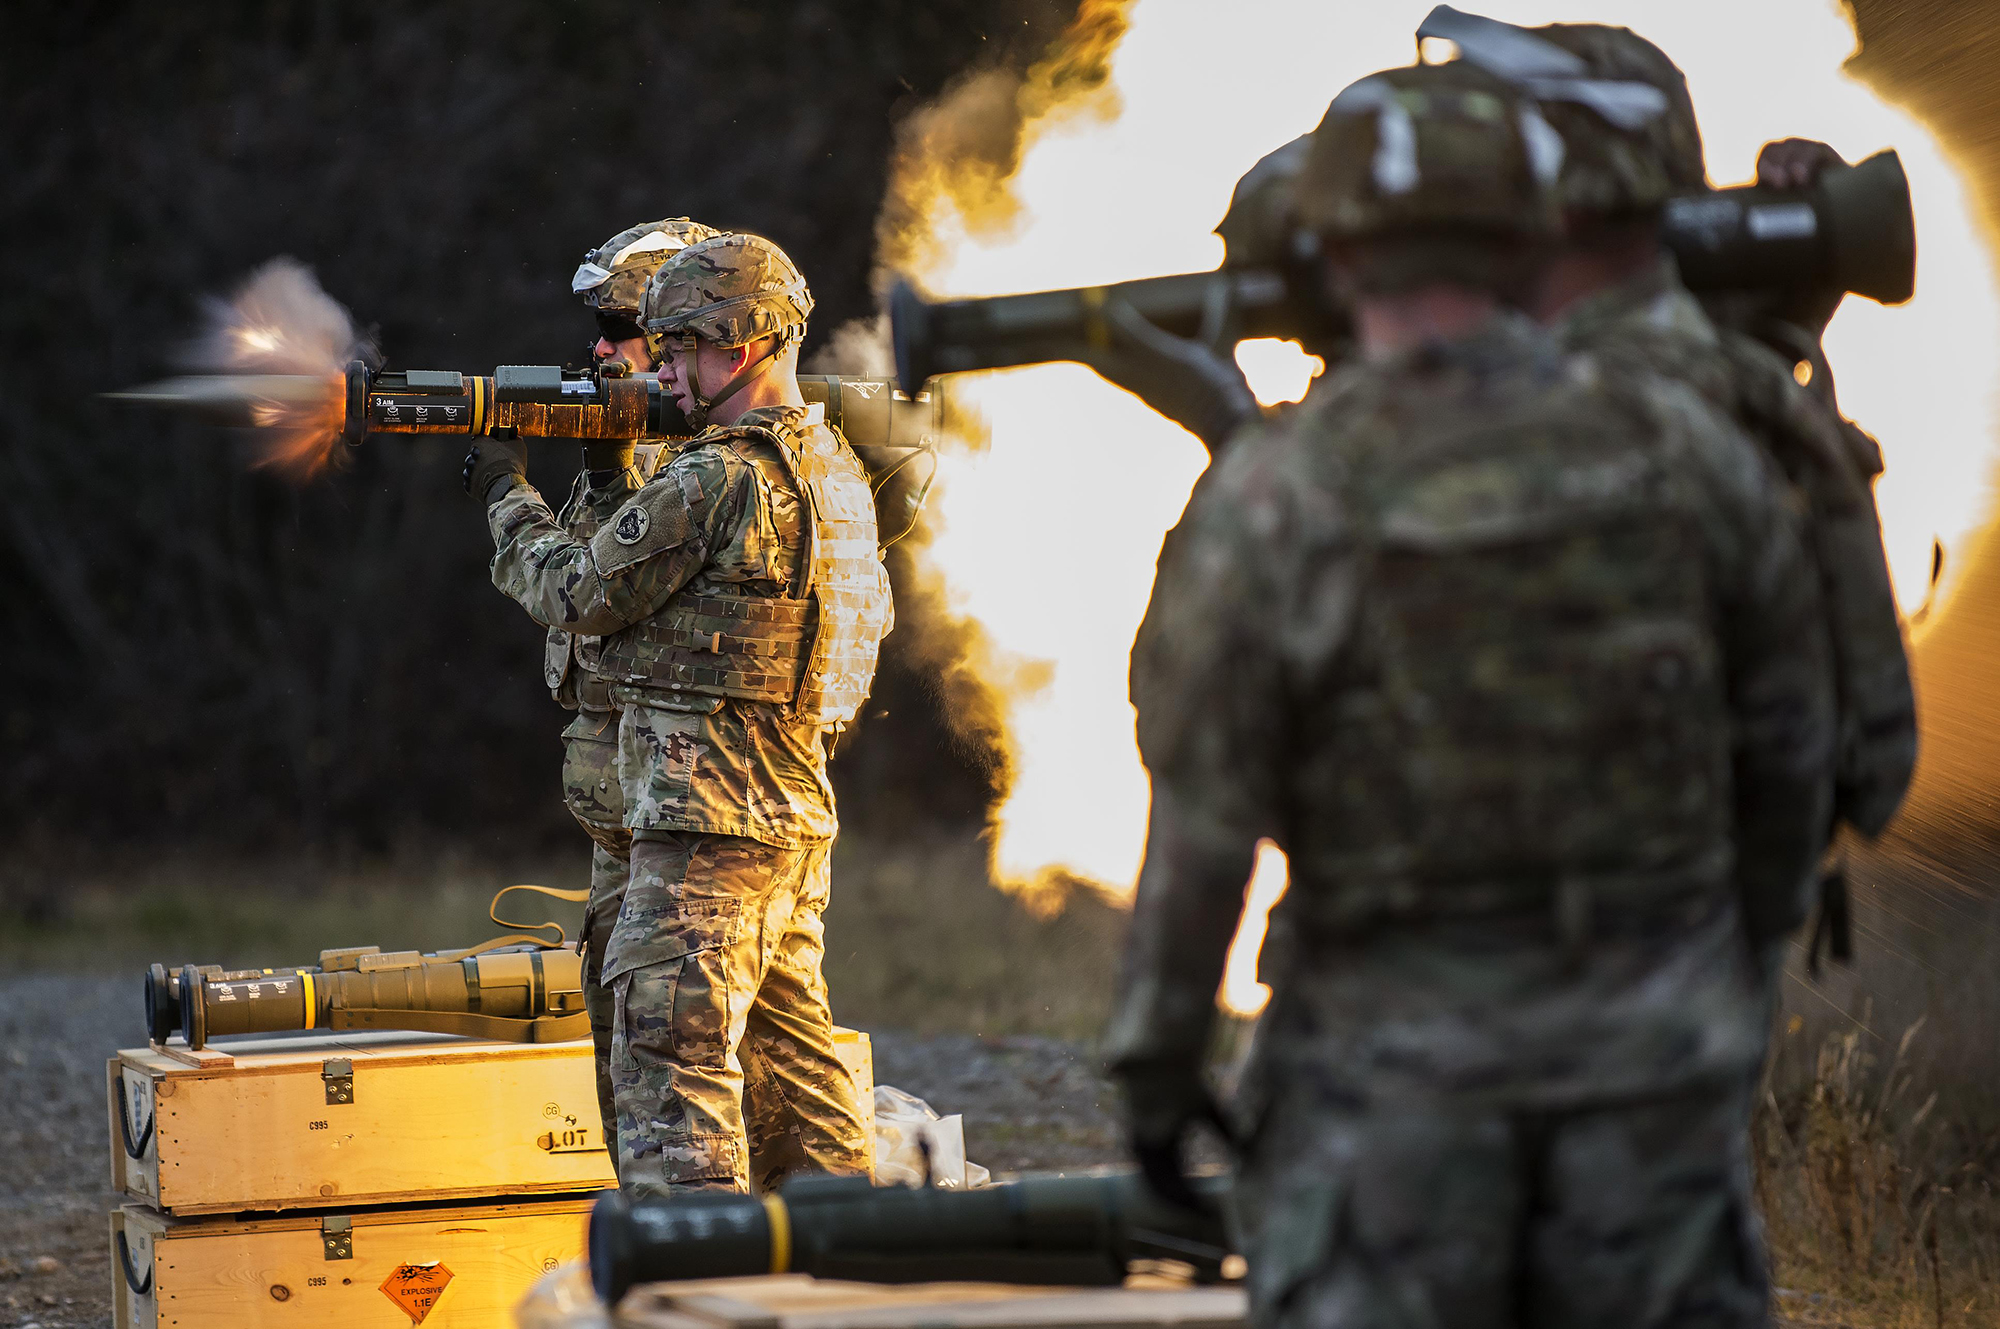 Army 1st Lt. Gerard Holodak, assigned to the 109th Transportation Company, 17th Combat Sustainment Support Battalion, U.S. Army Alaska, fires the M136E1 AT4-CS confined space light anti-armor weapon at Joint Base Elmendorf-Richardson. (Staff Sgt. Westin Warburton/Army)